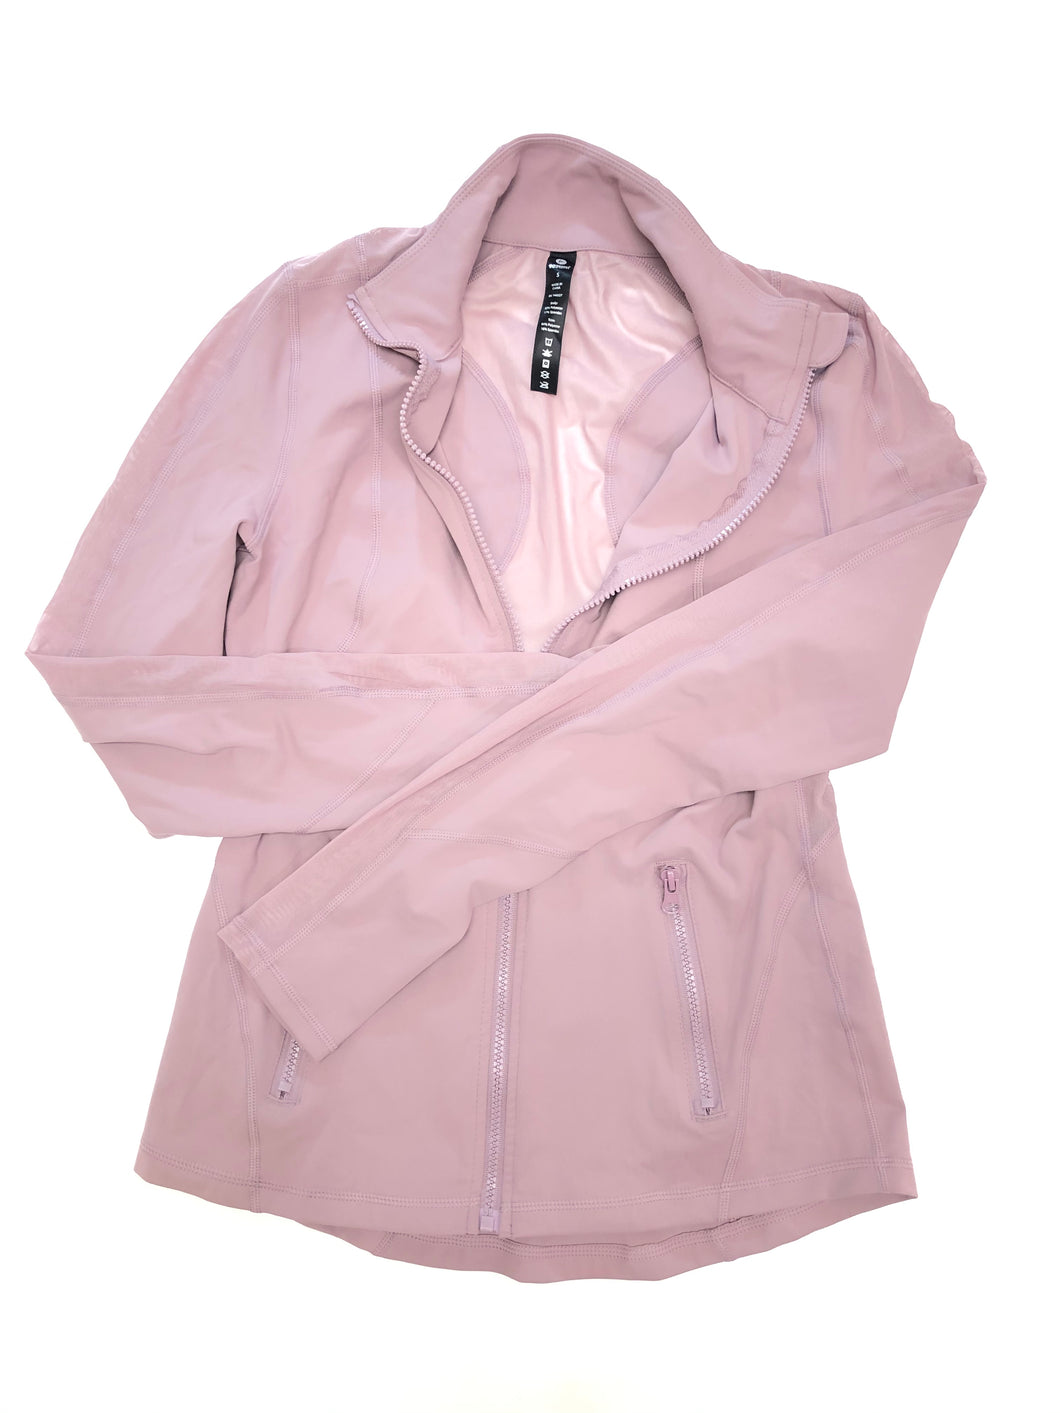 90 Degrees Athletic Jacket Women's S